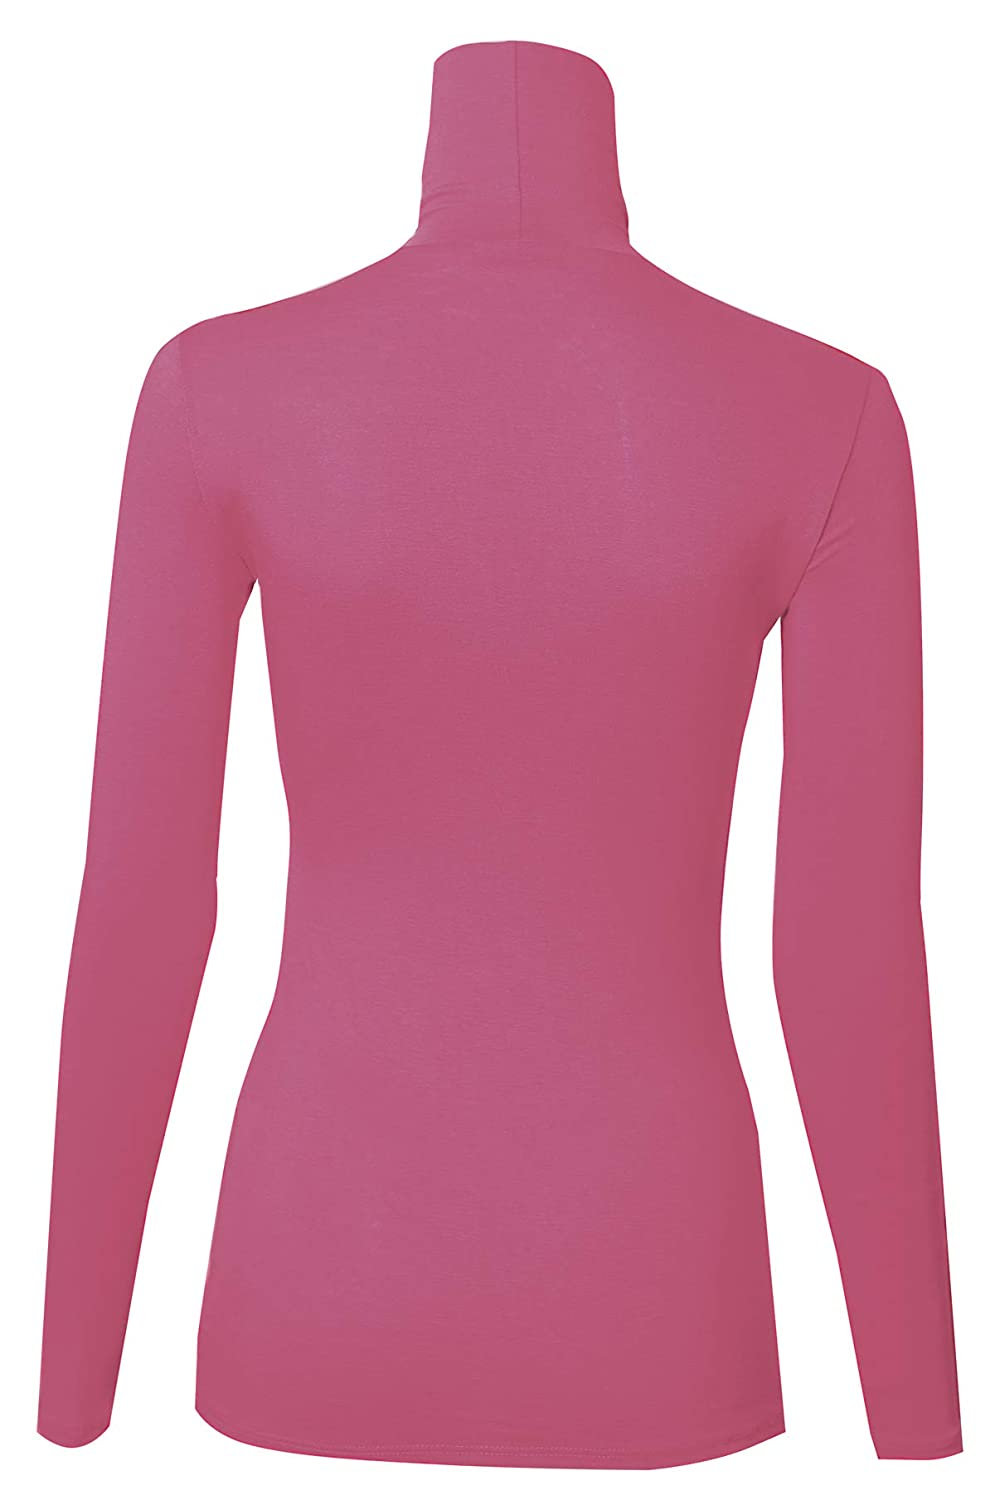 PINMUSE Women s Long Sleeve Quality Turle Neck Top Pullover Made in USA S  to 3XL at Amazon Women s Clothing store  1b3f56240